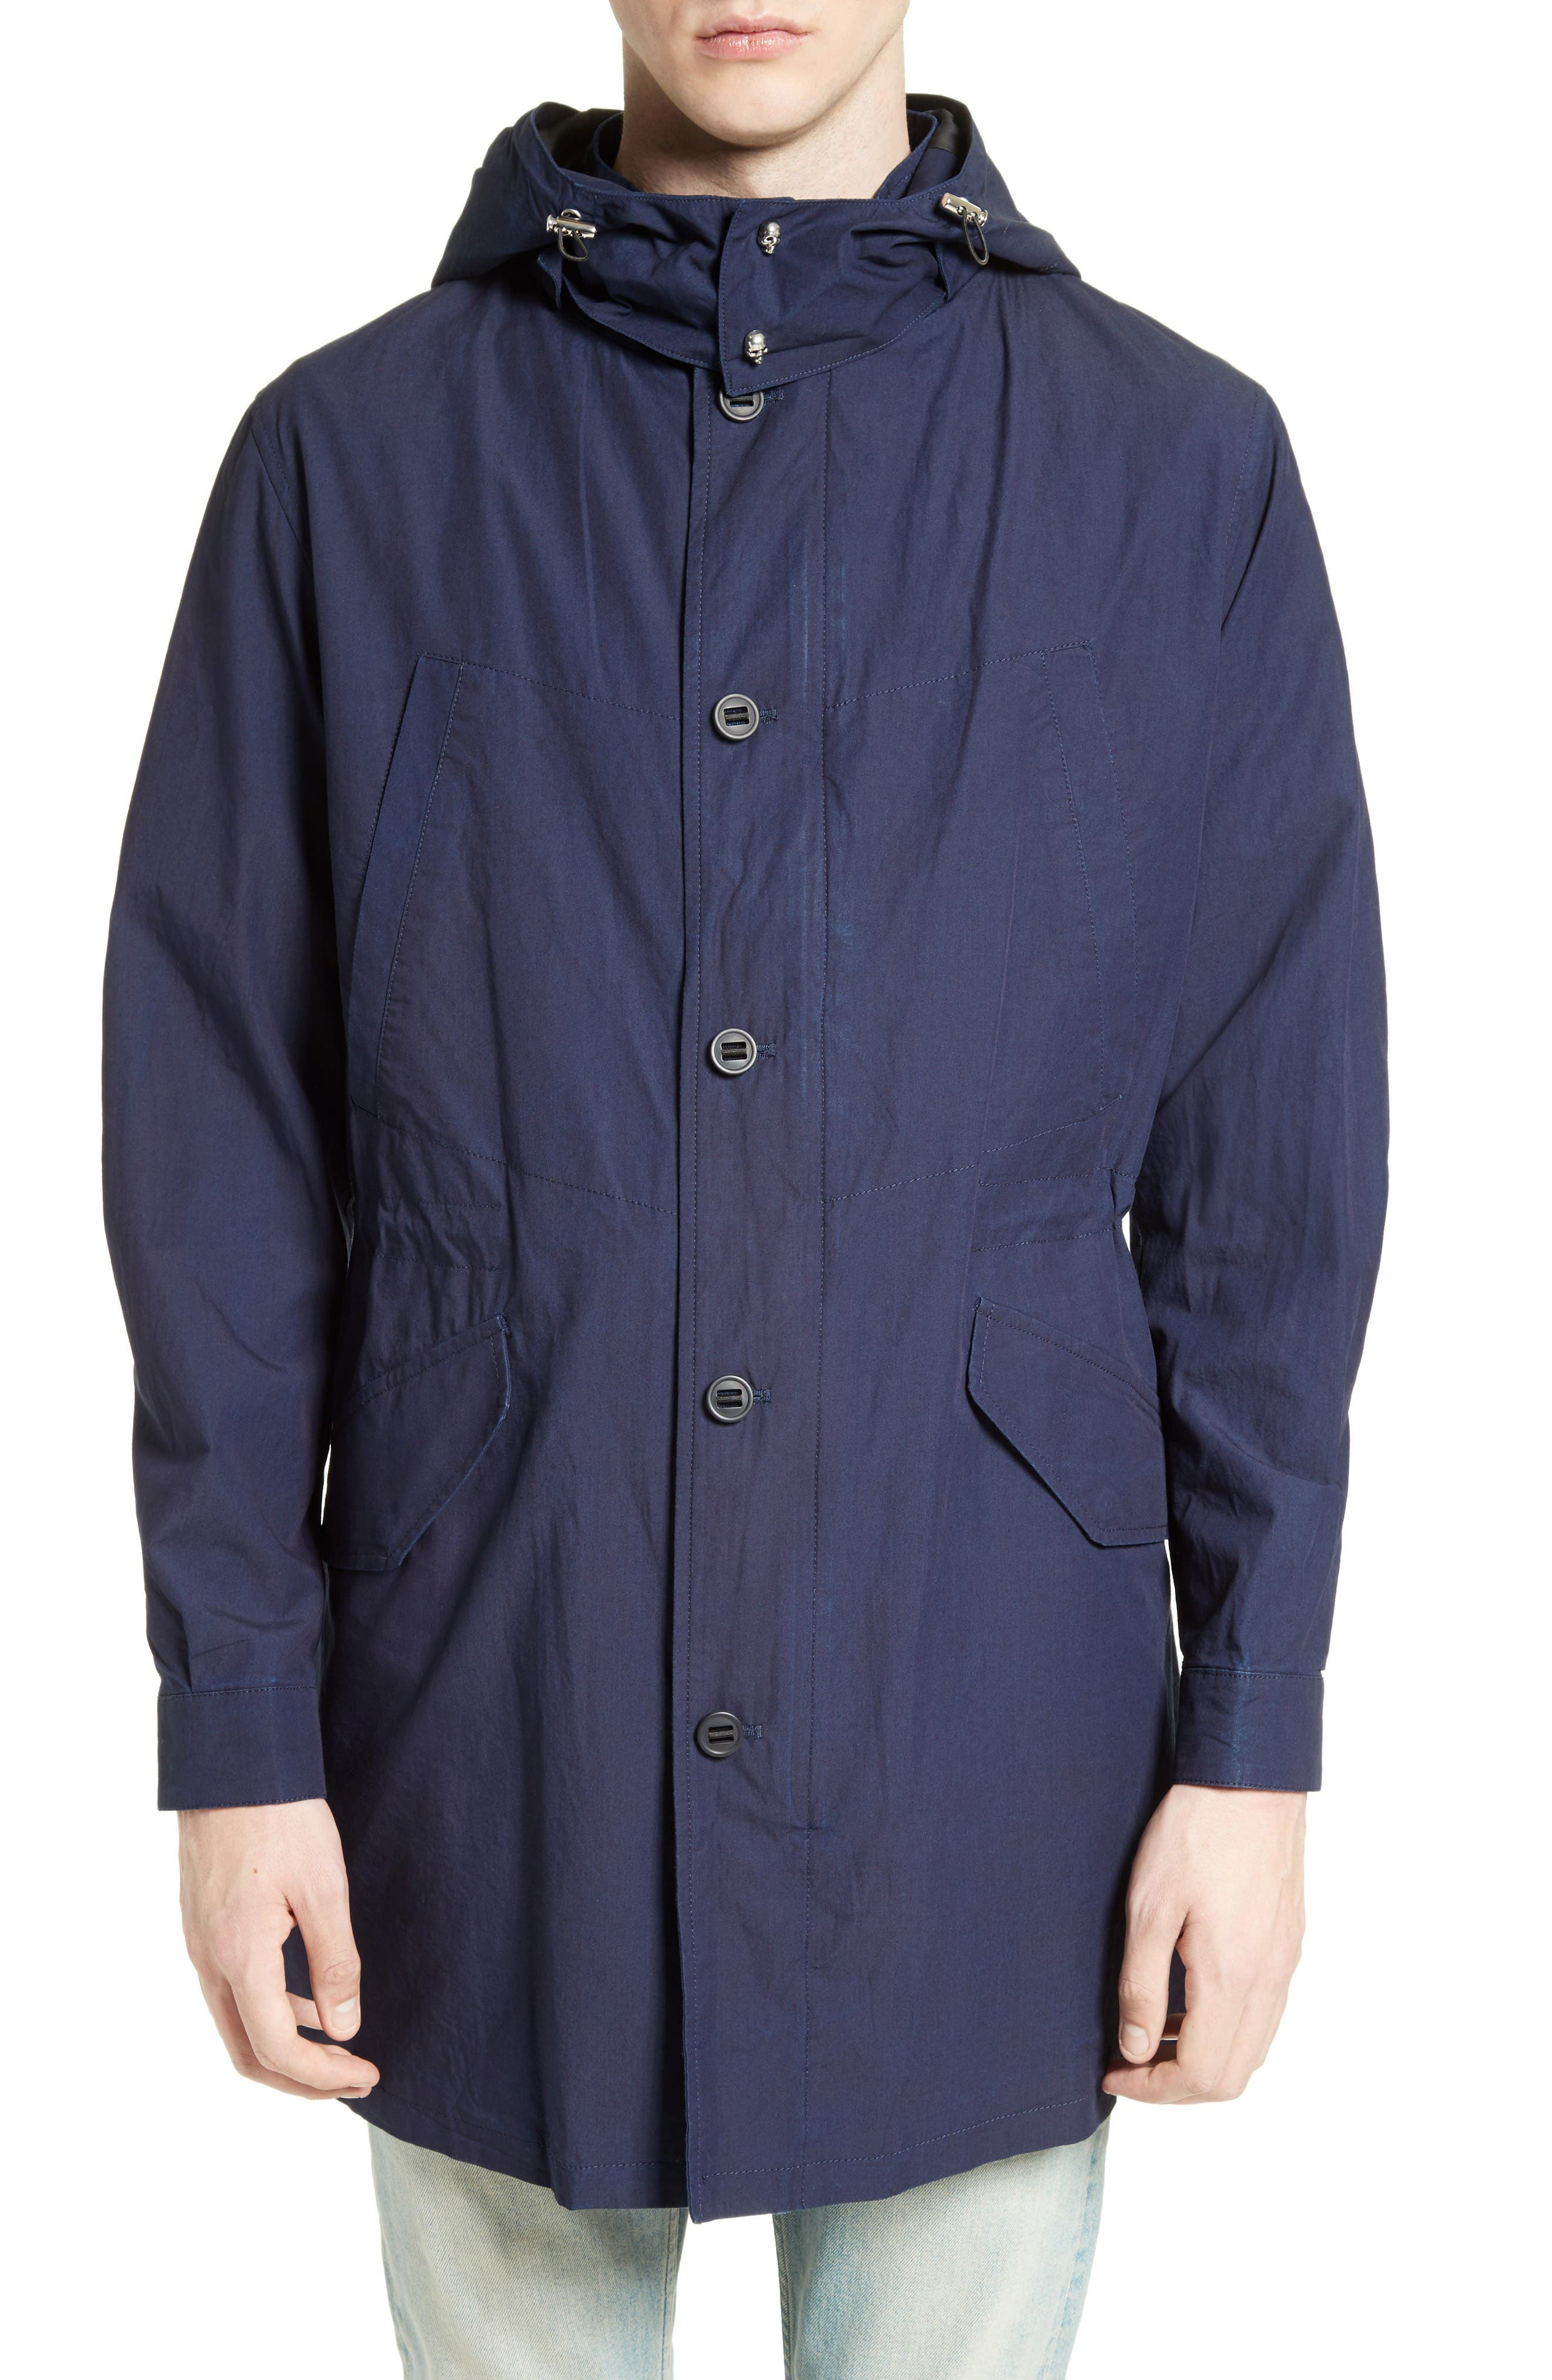 THE KOOPLES Hooded Cotton Parka